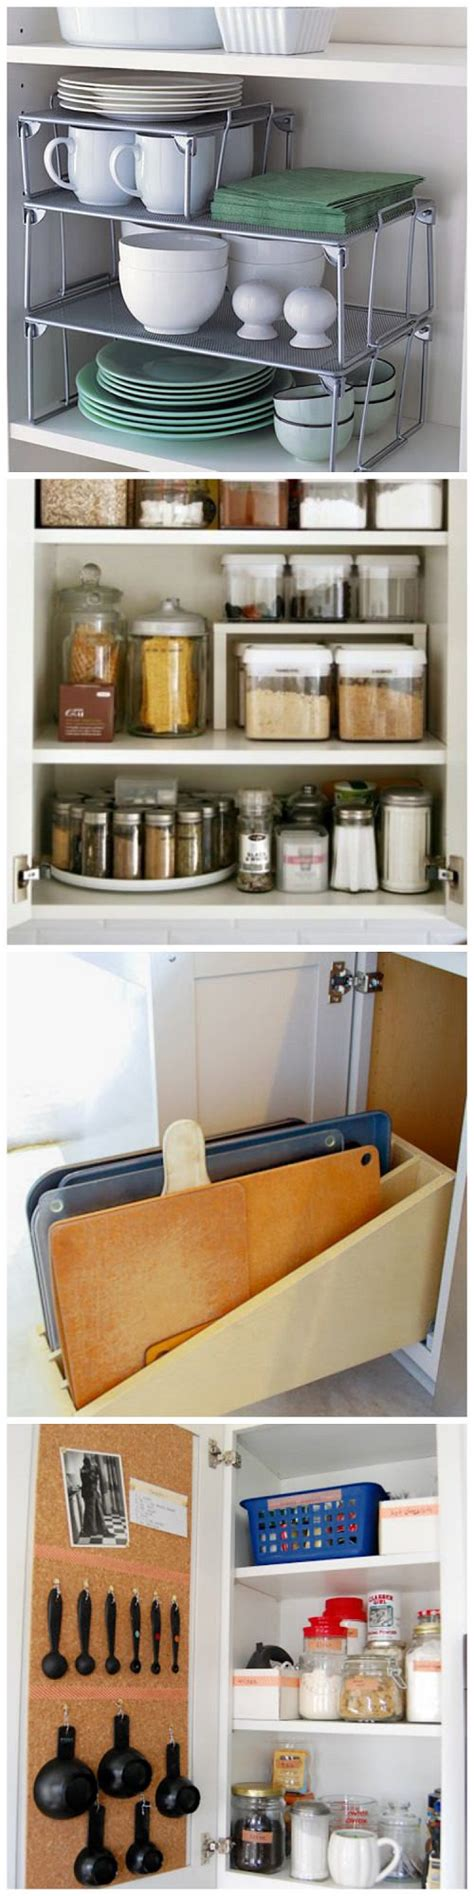 15 beautifully organized kitchen cabinets and tips we learned from each organization 15 beautifully organized kitchen cabinets 28 images 15